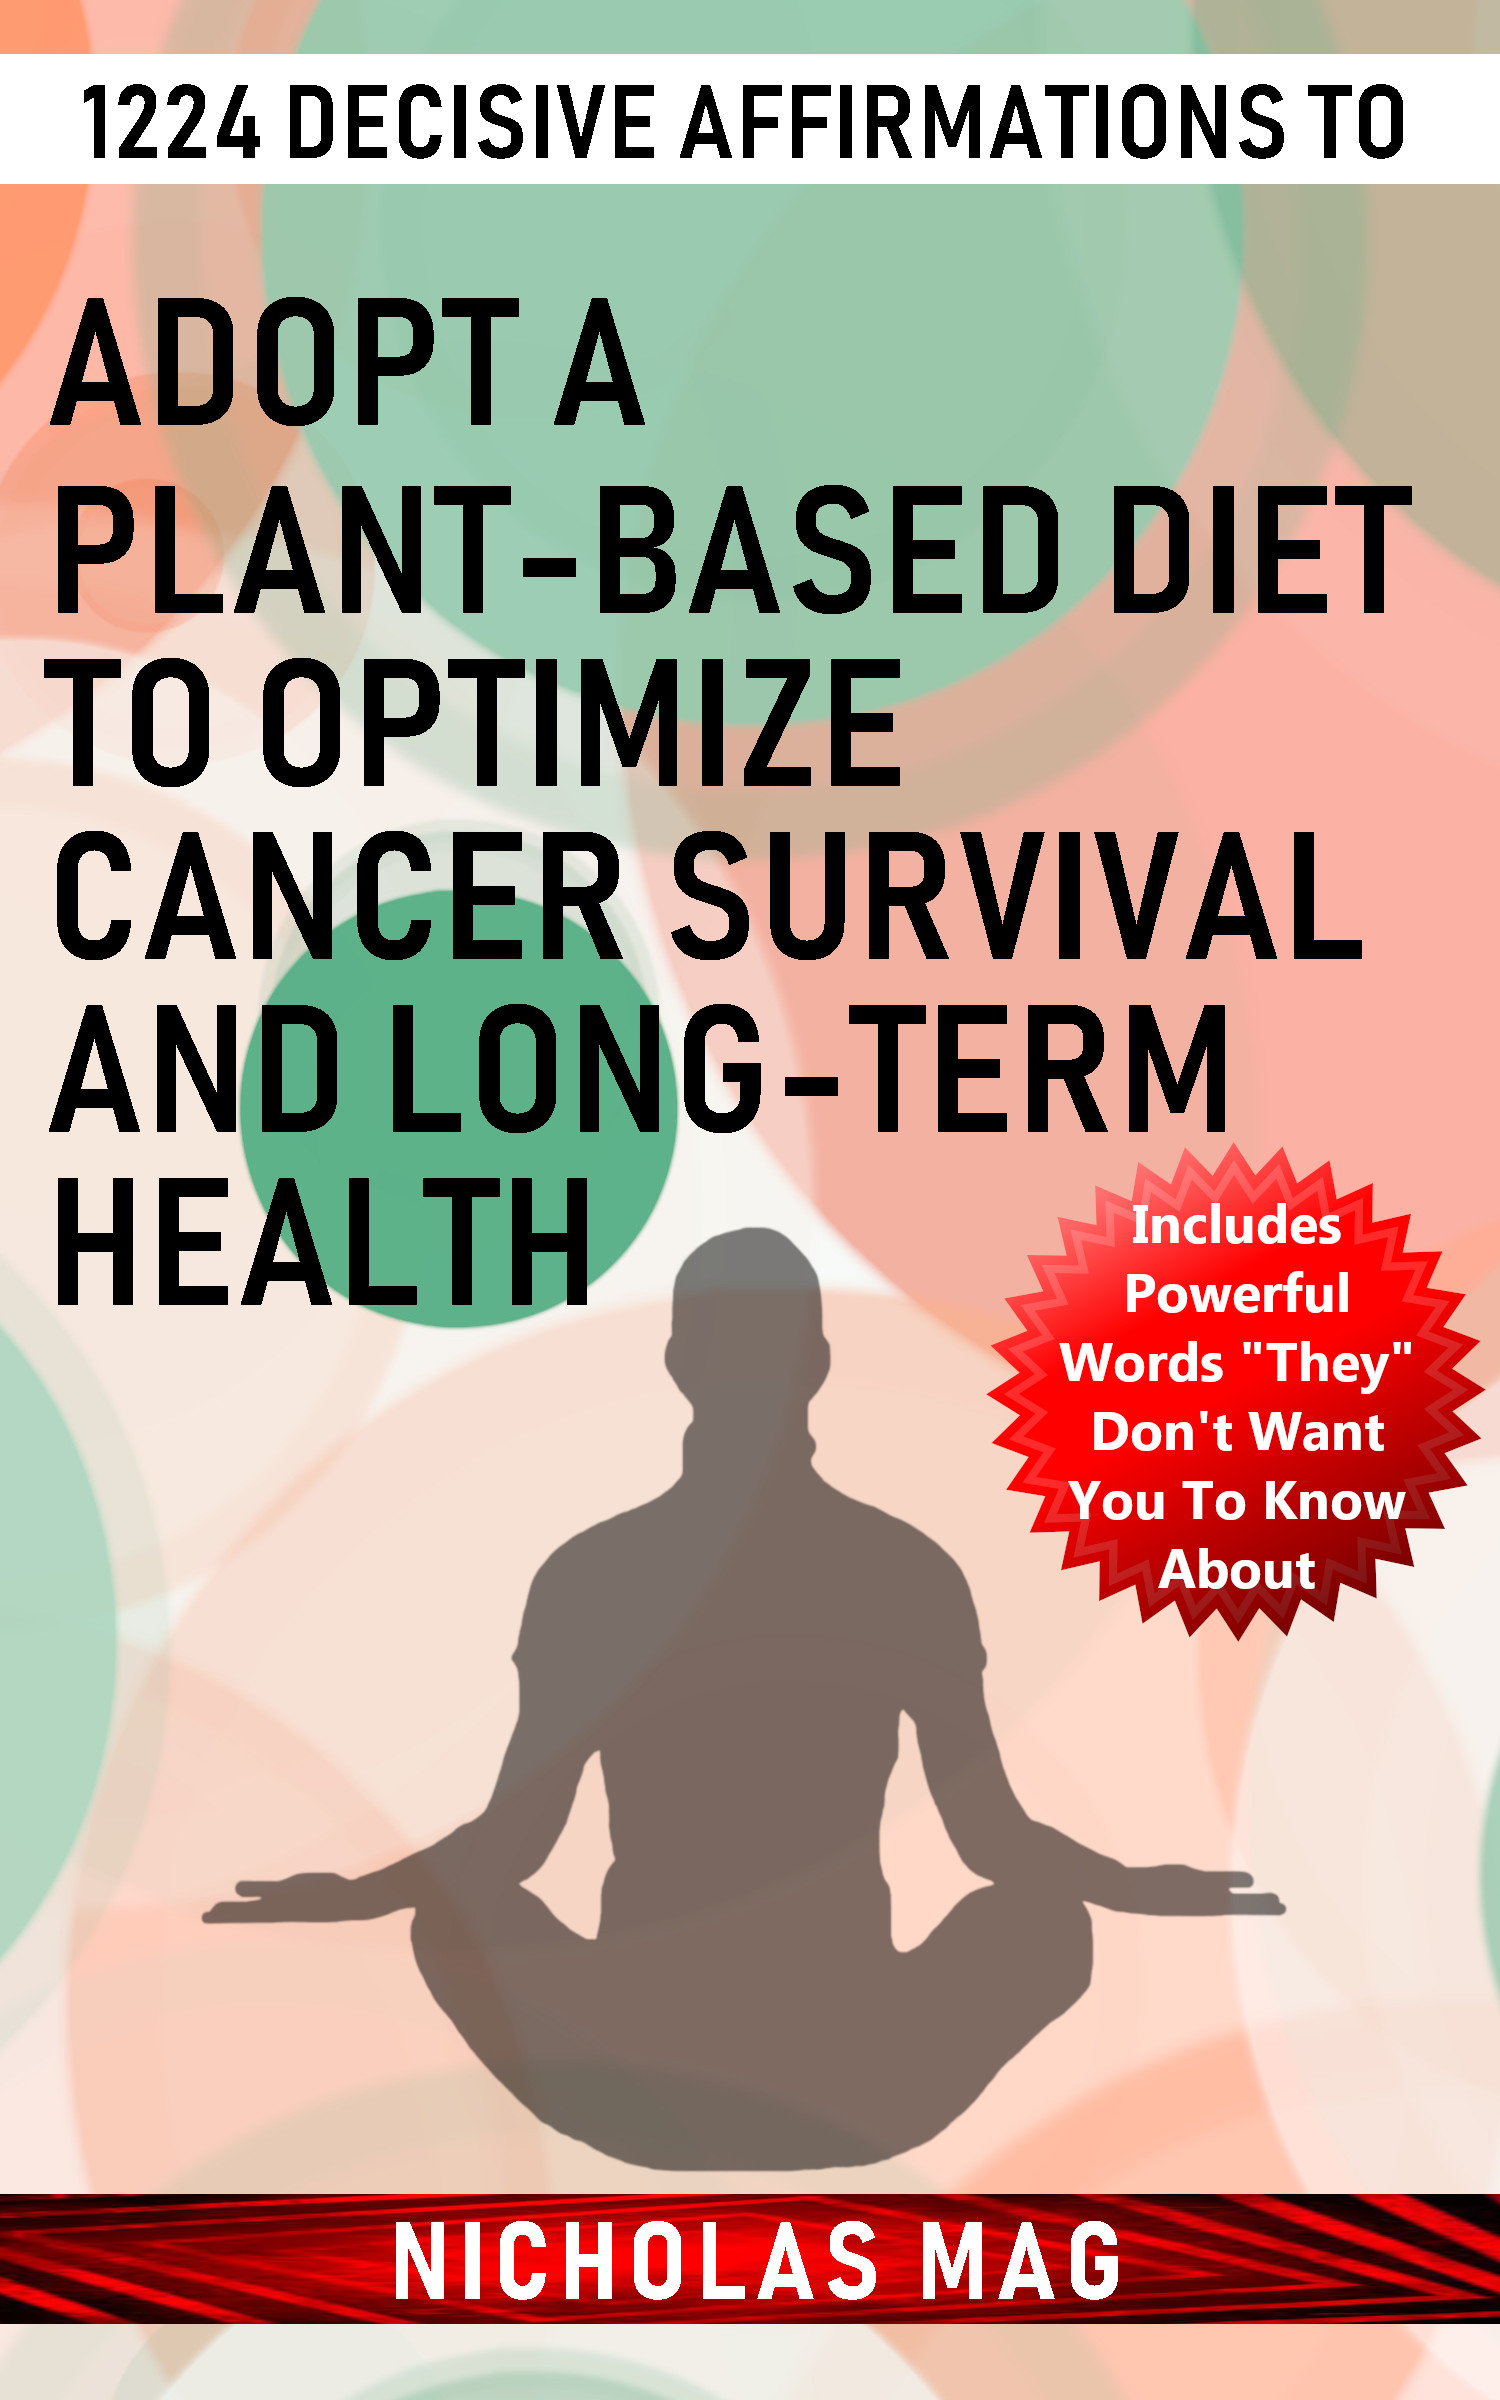 1224 Decisive Affirmations to Adopt a Plant-based Diet to Optimize Cancer  Survival and Long-term Health, an Ebook by Nicholas Mag